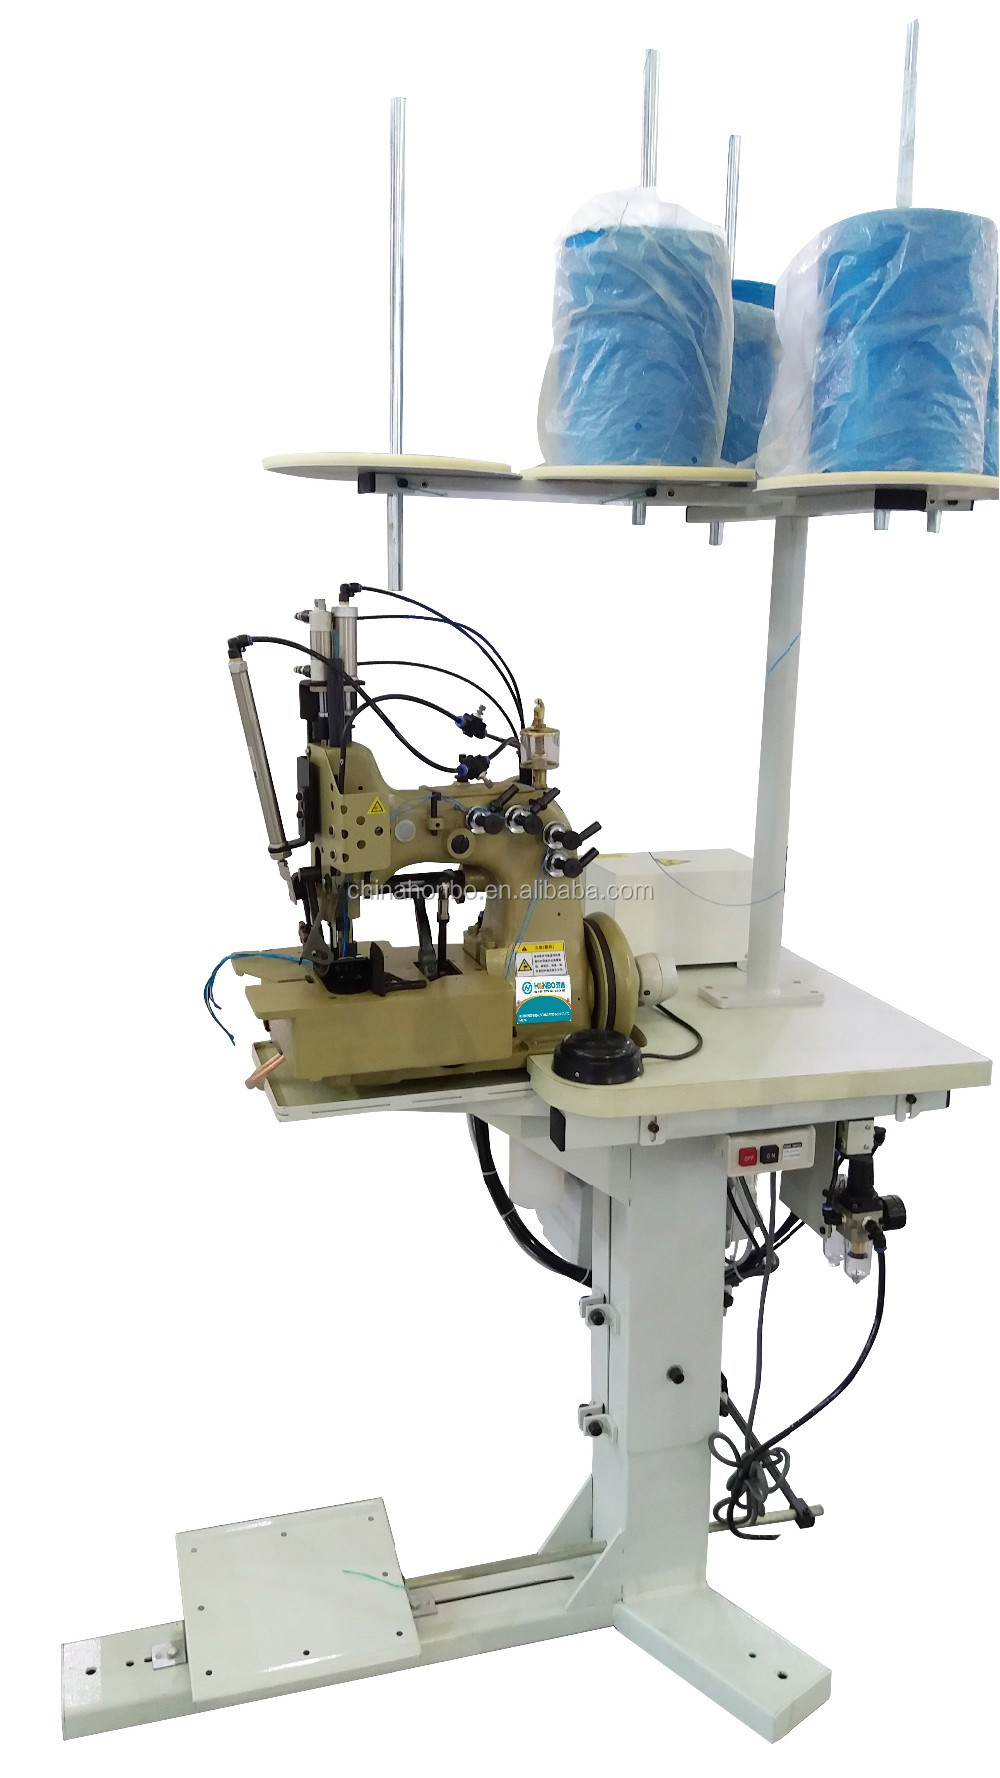 HB-81300A1H Double Needle Four Thread Jumbo Bag Overlock Sewing Machine